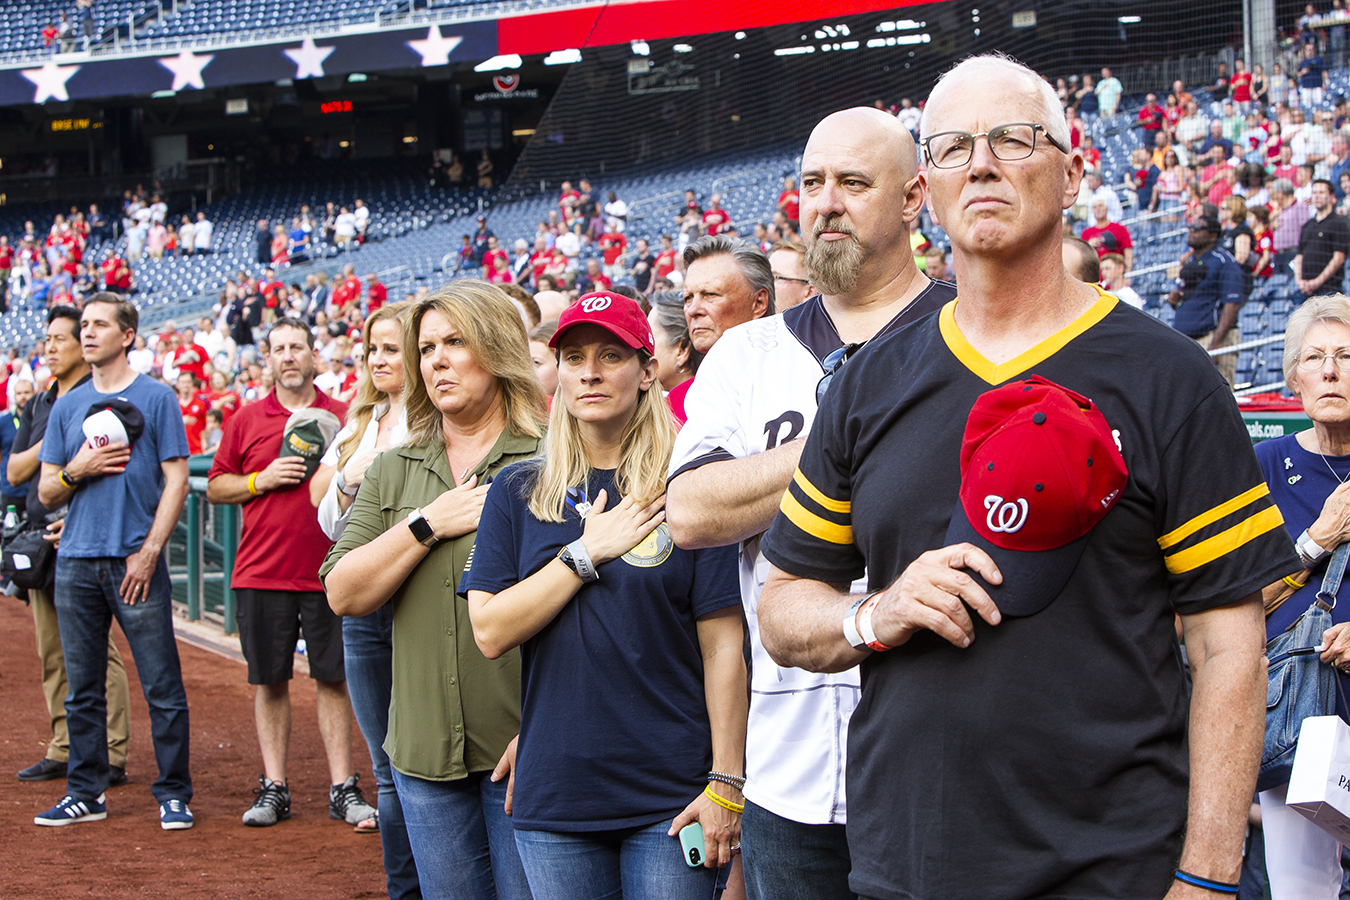 honorees get a standing ovation at nats park